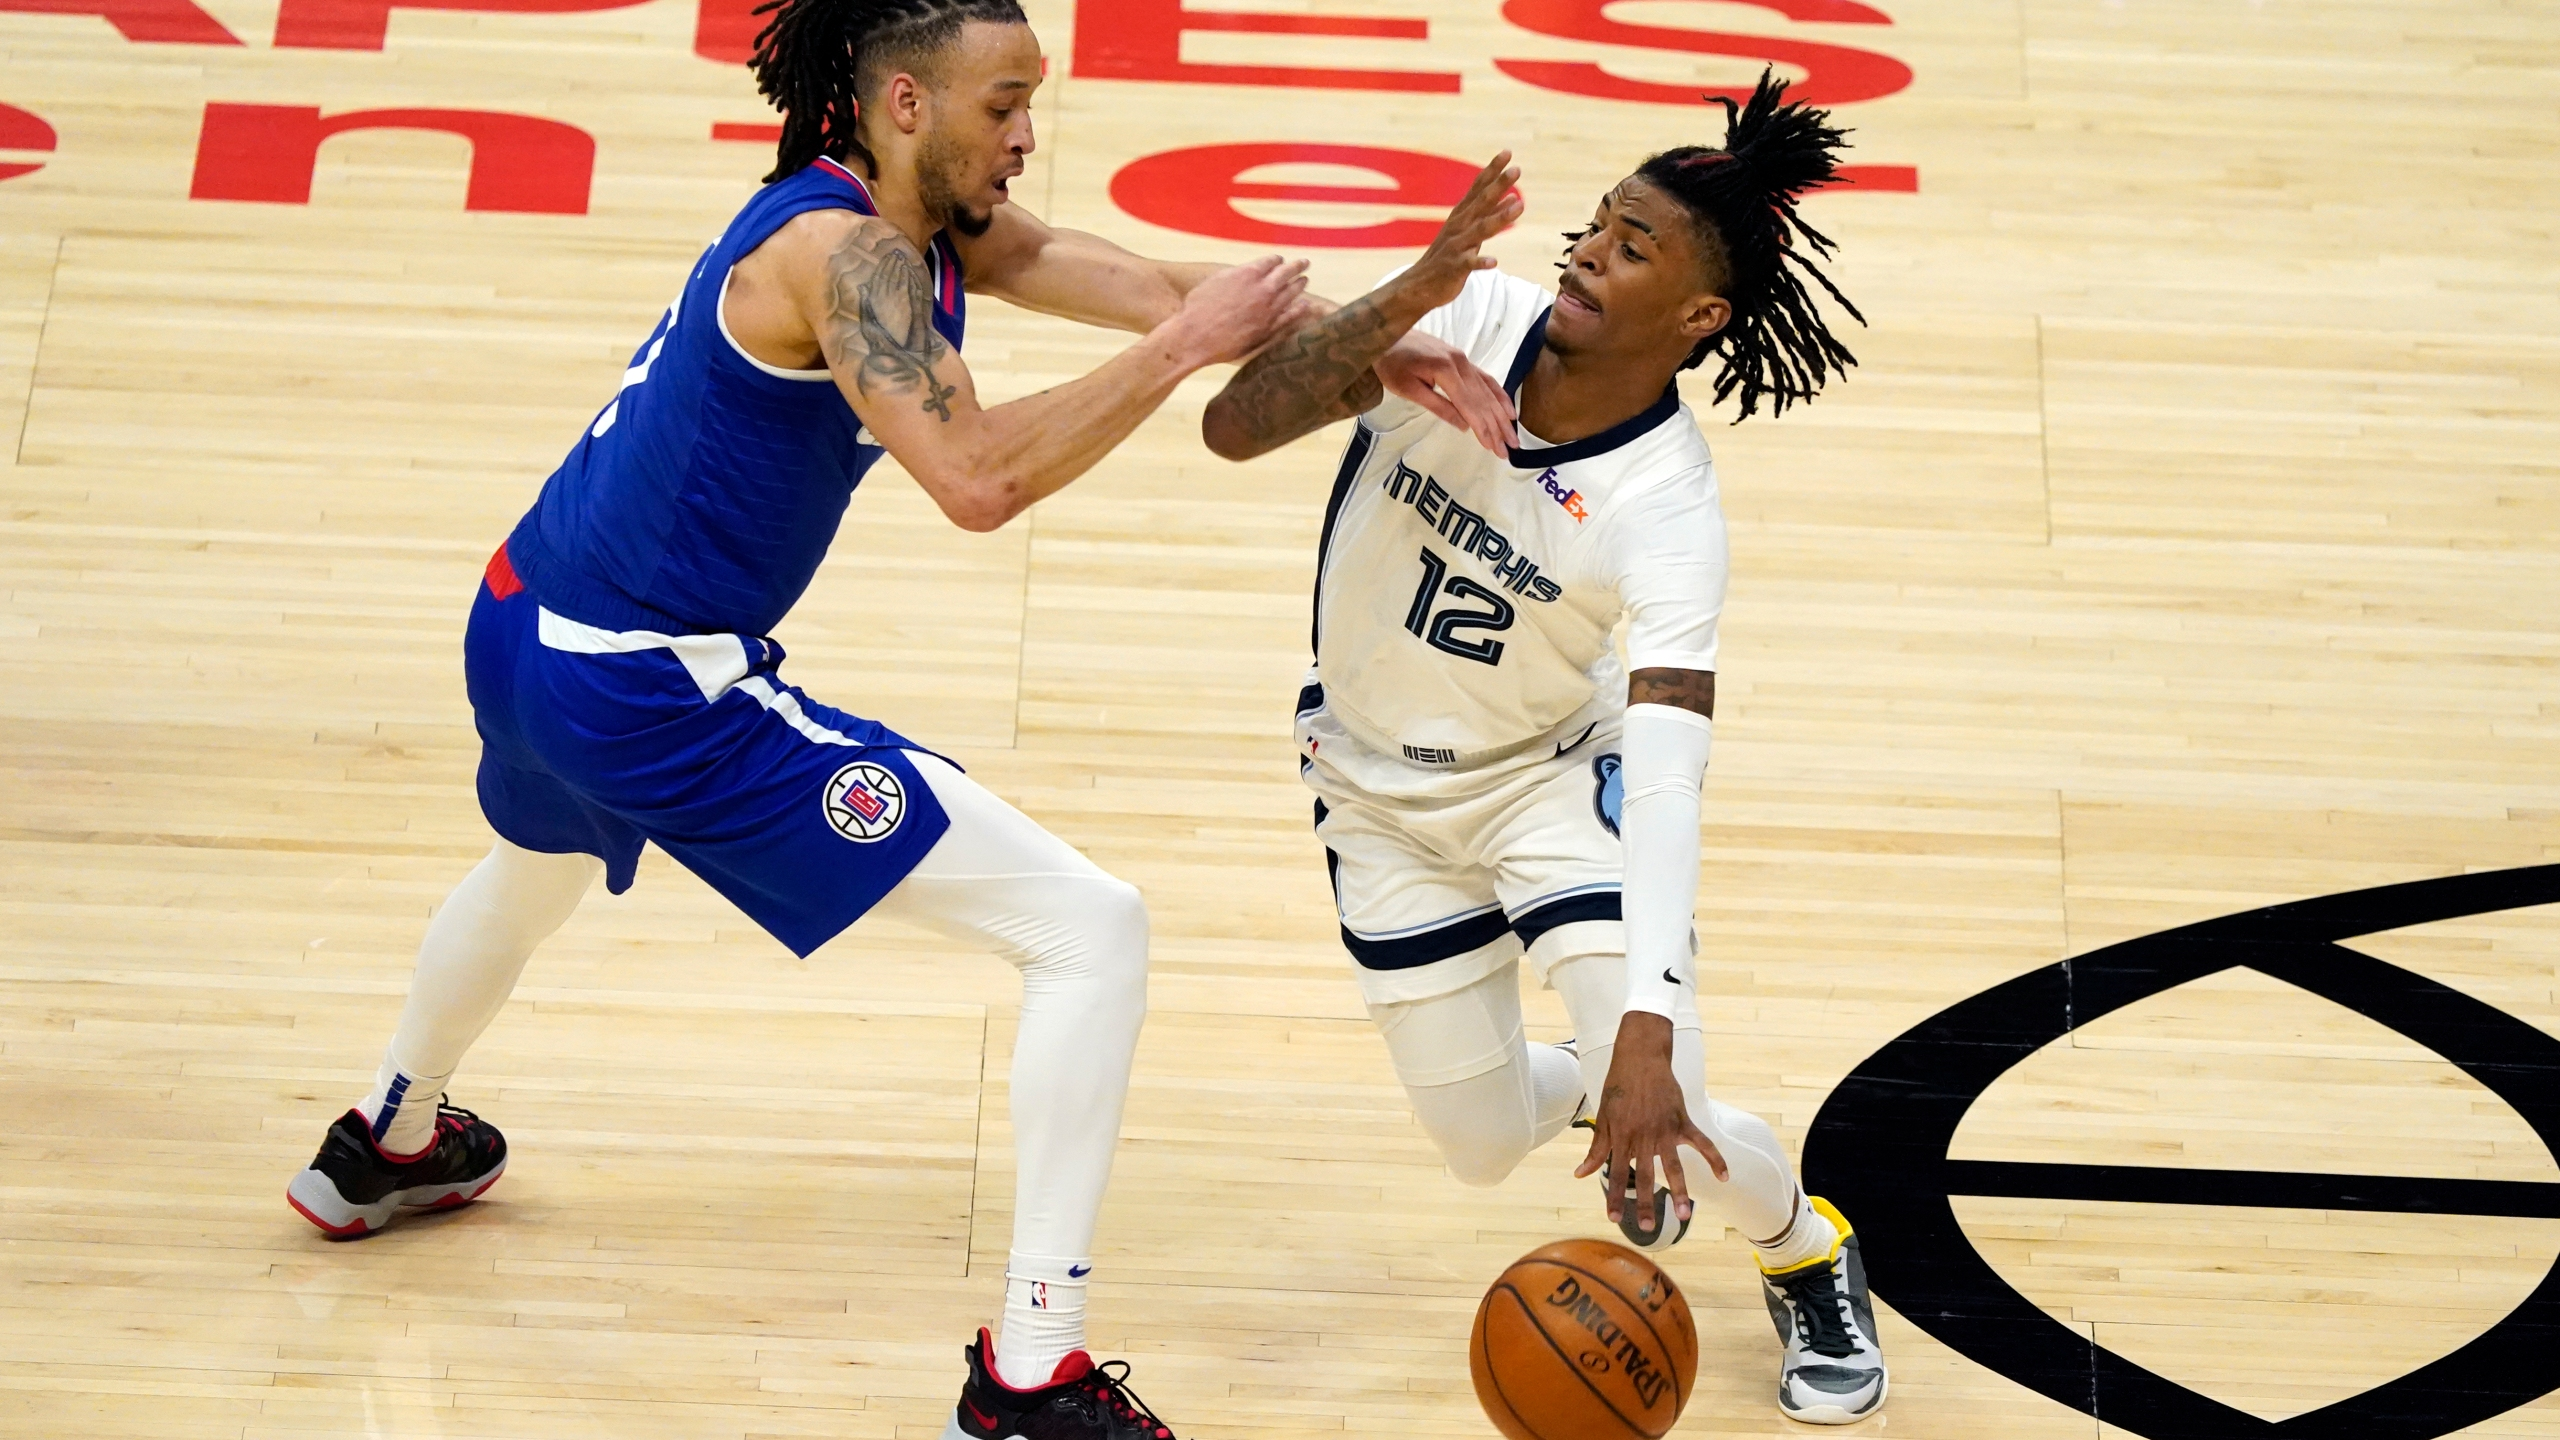 Memphis Grizzlies guard Ja Morant (12) is defended by Los Angeles Clippers guard Amir Coffey during the first half of an NBA basketball game in Los Angeles on April 21, 2021. (Marcio Jose Sanchez / Associated Press)